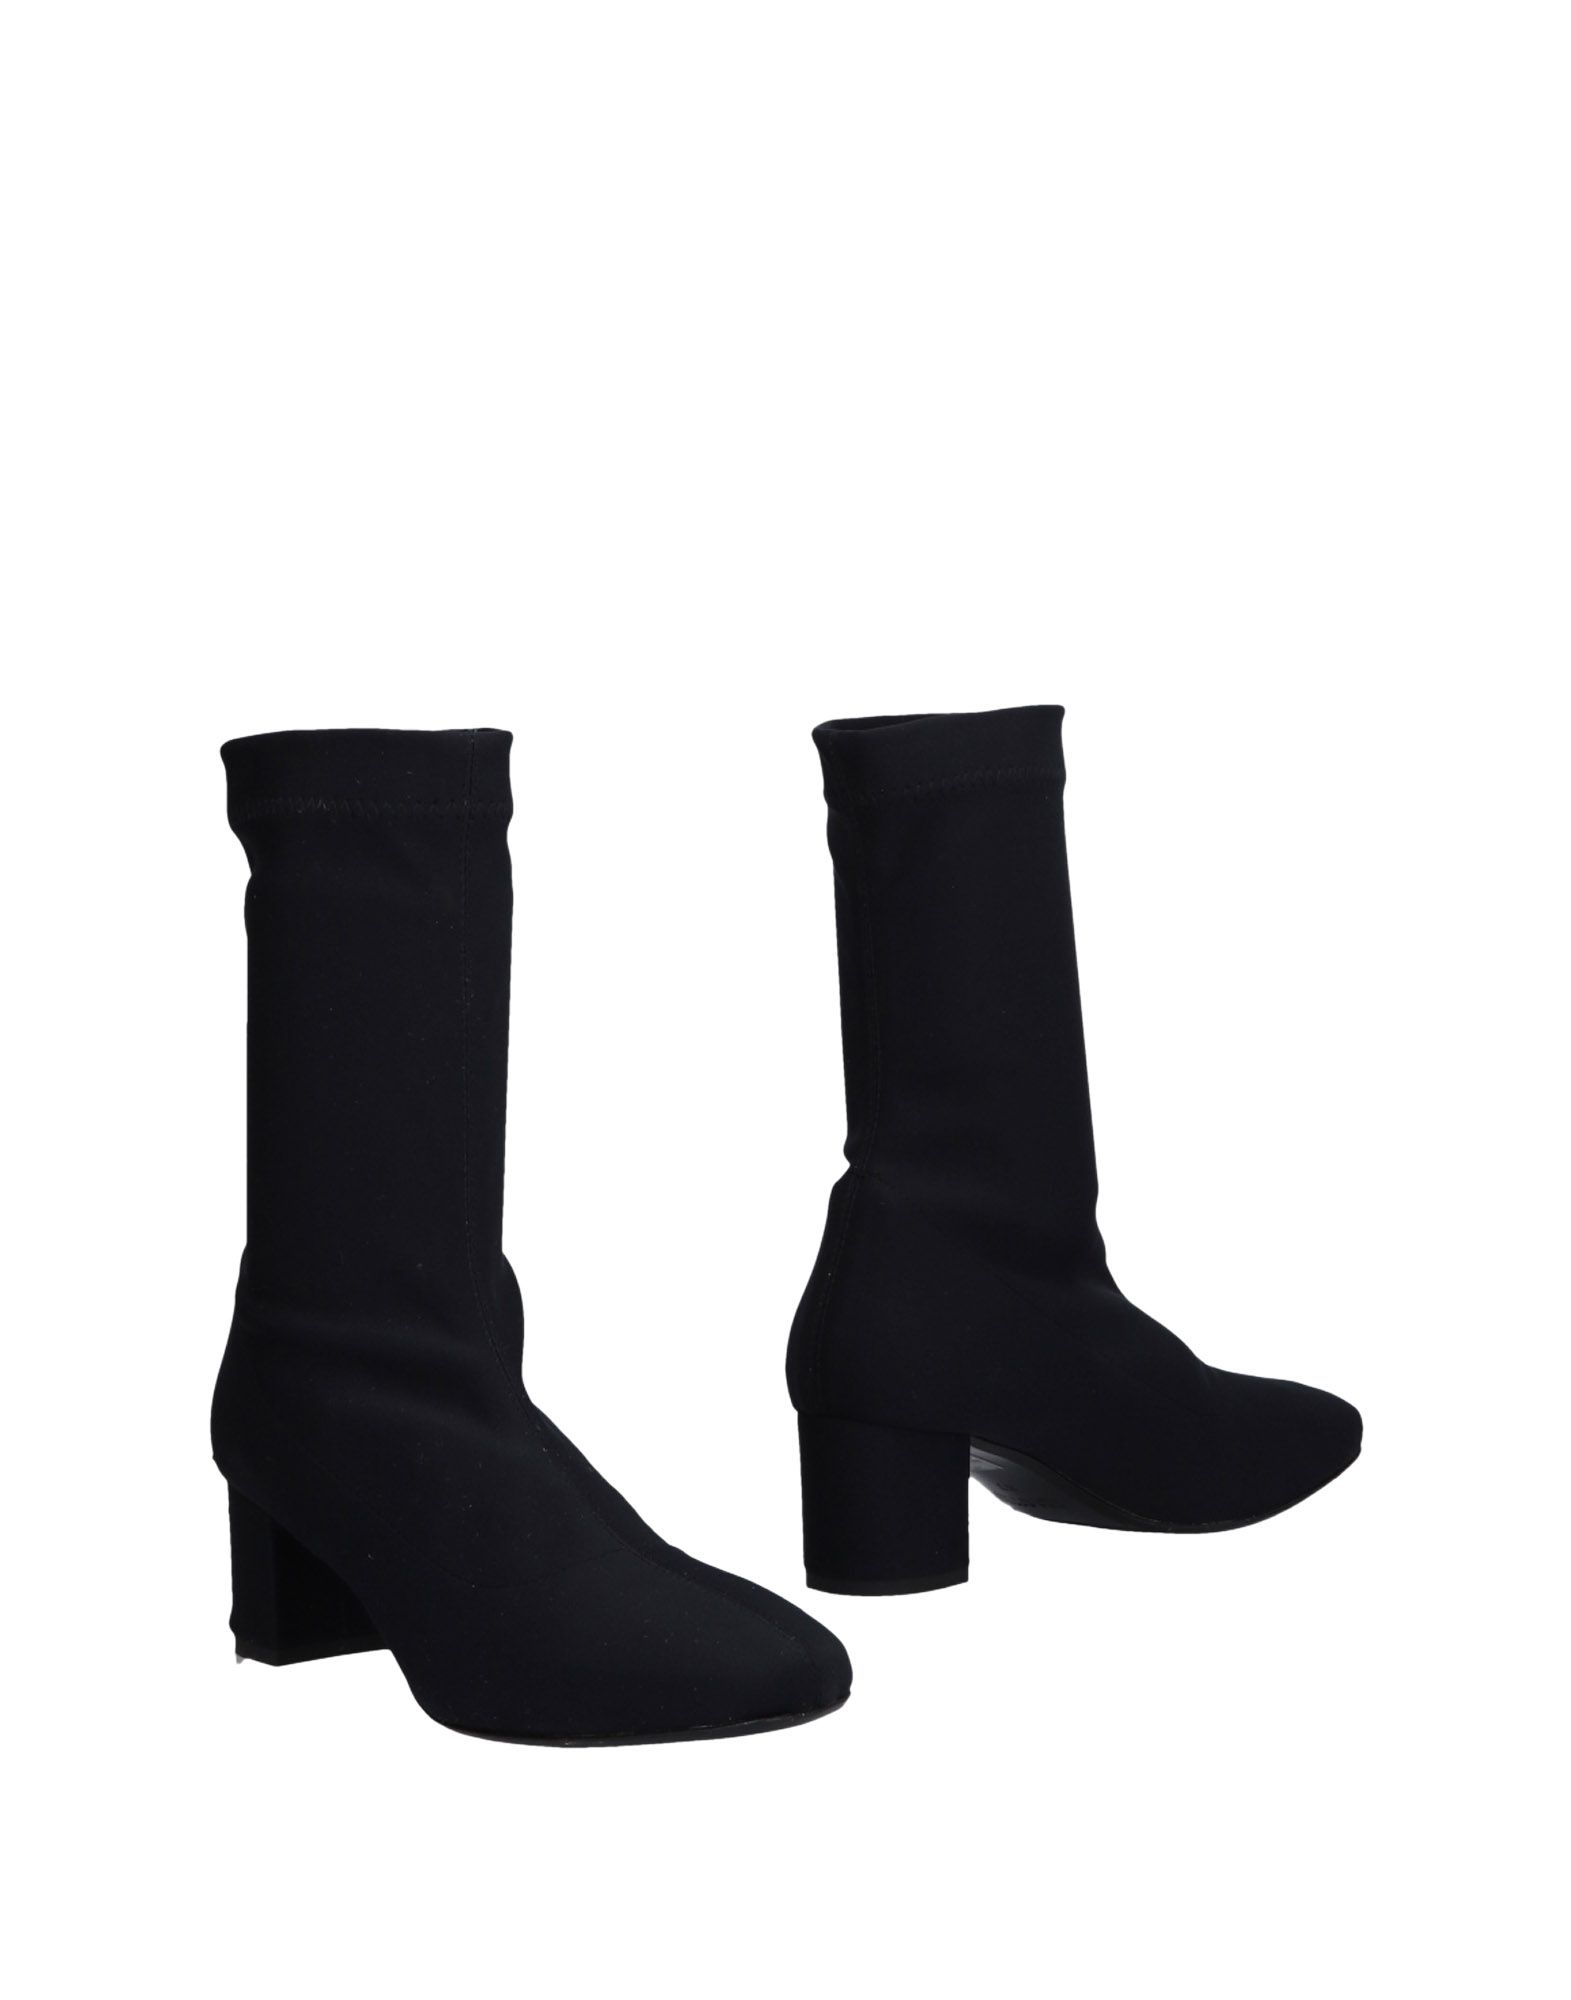 FOOTWEAR - Ankle boots on YOOX.COM Twiggy 4s0uoboMD